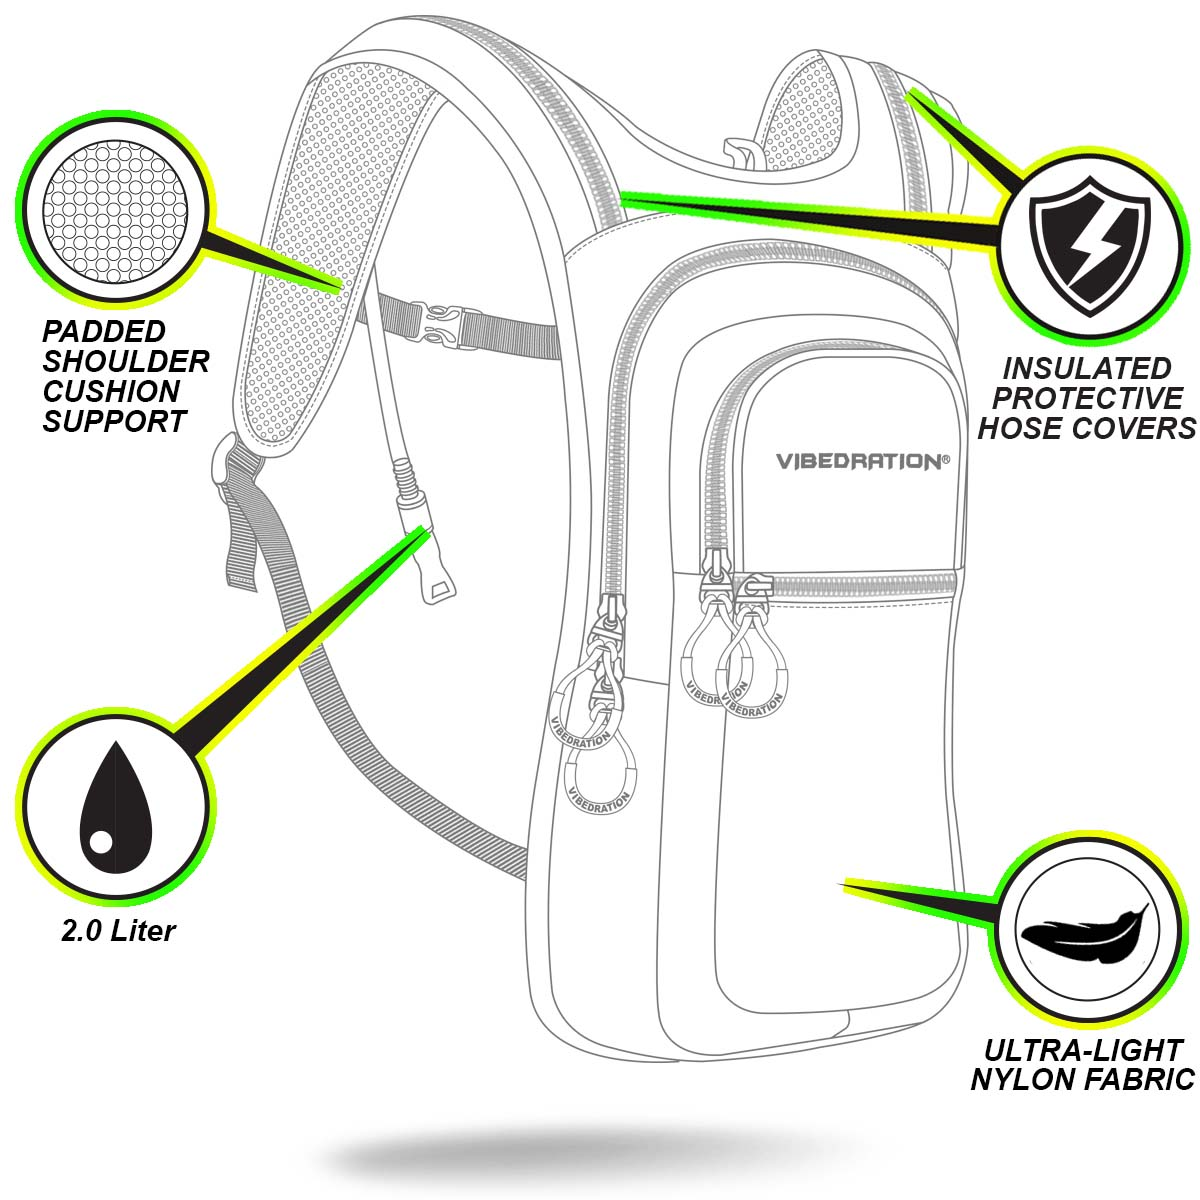 VIP 2.0L Nylon Daypack features